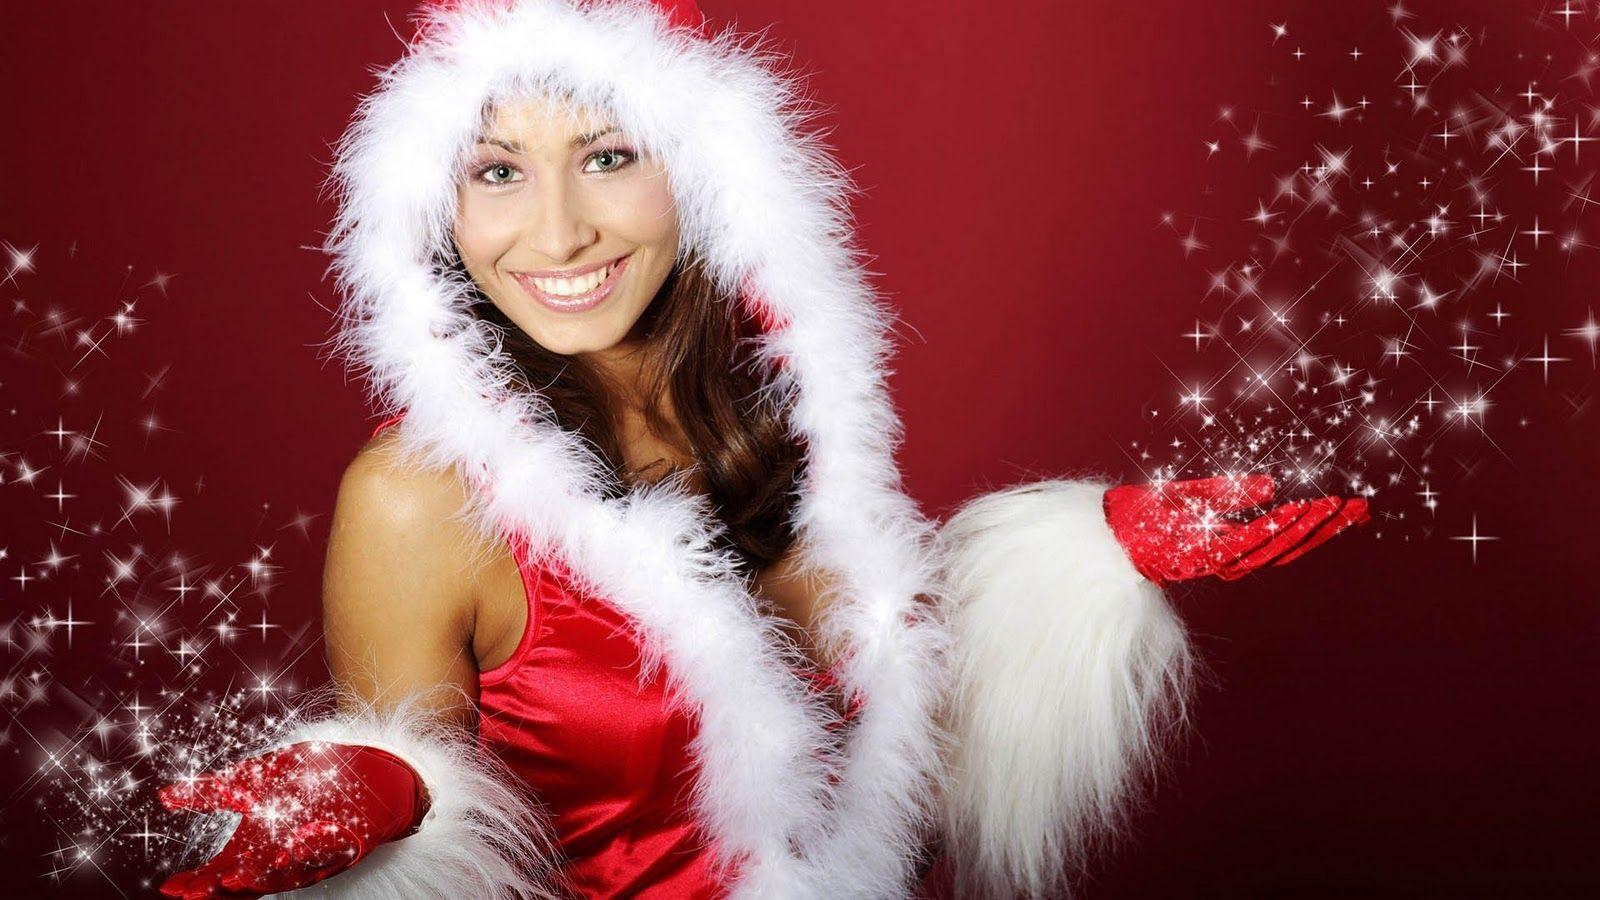 Hot HD Wallpapers and HD Images: Hot Christmas Girls HD Widescreen .